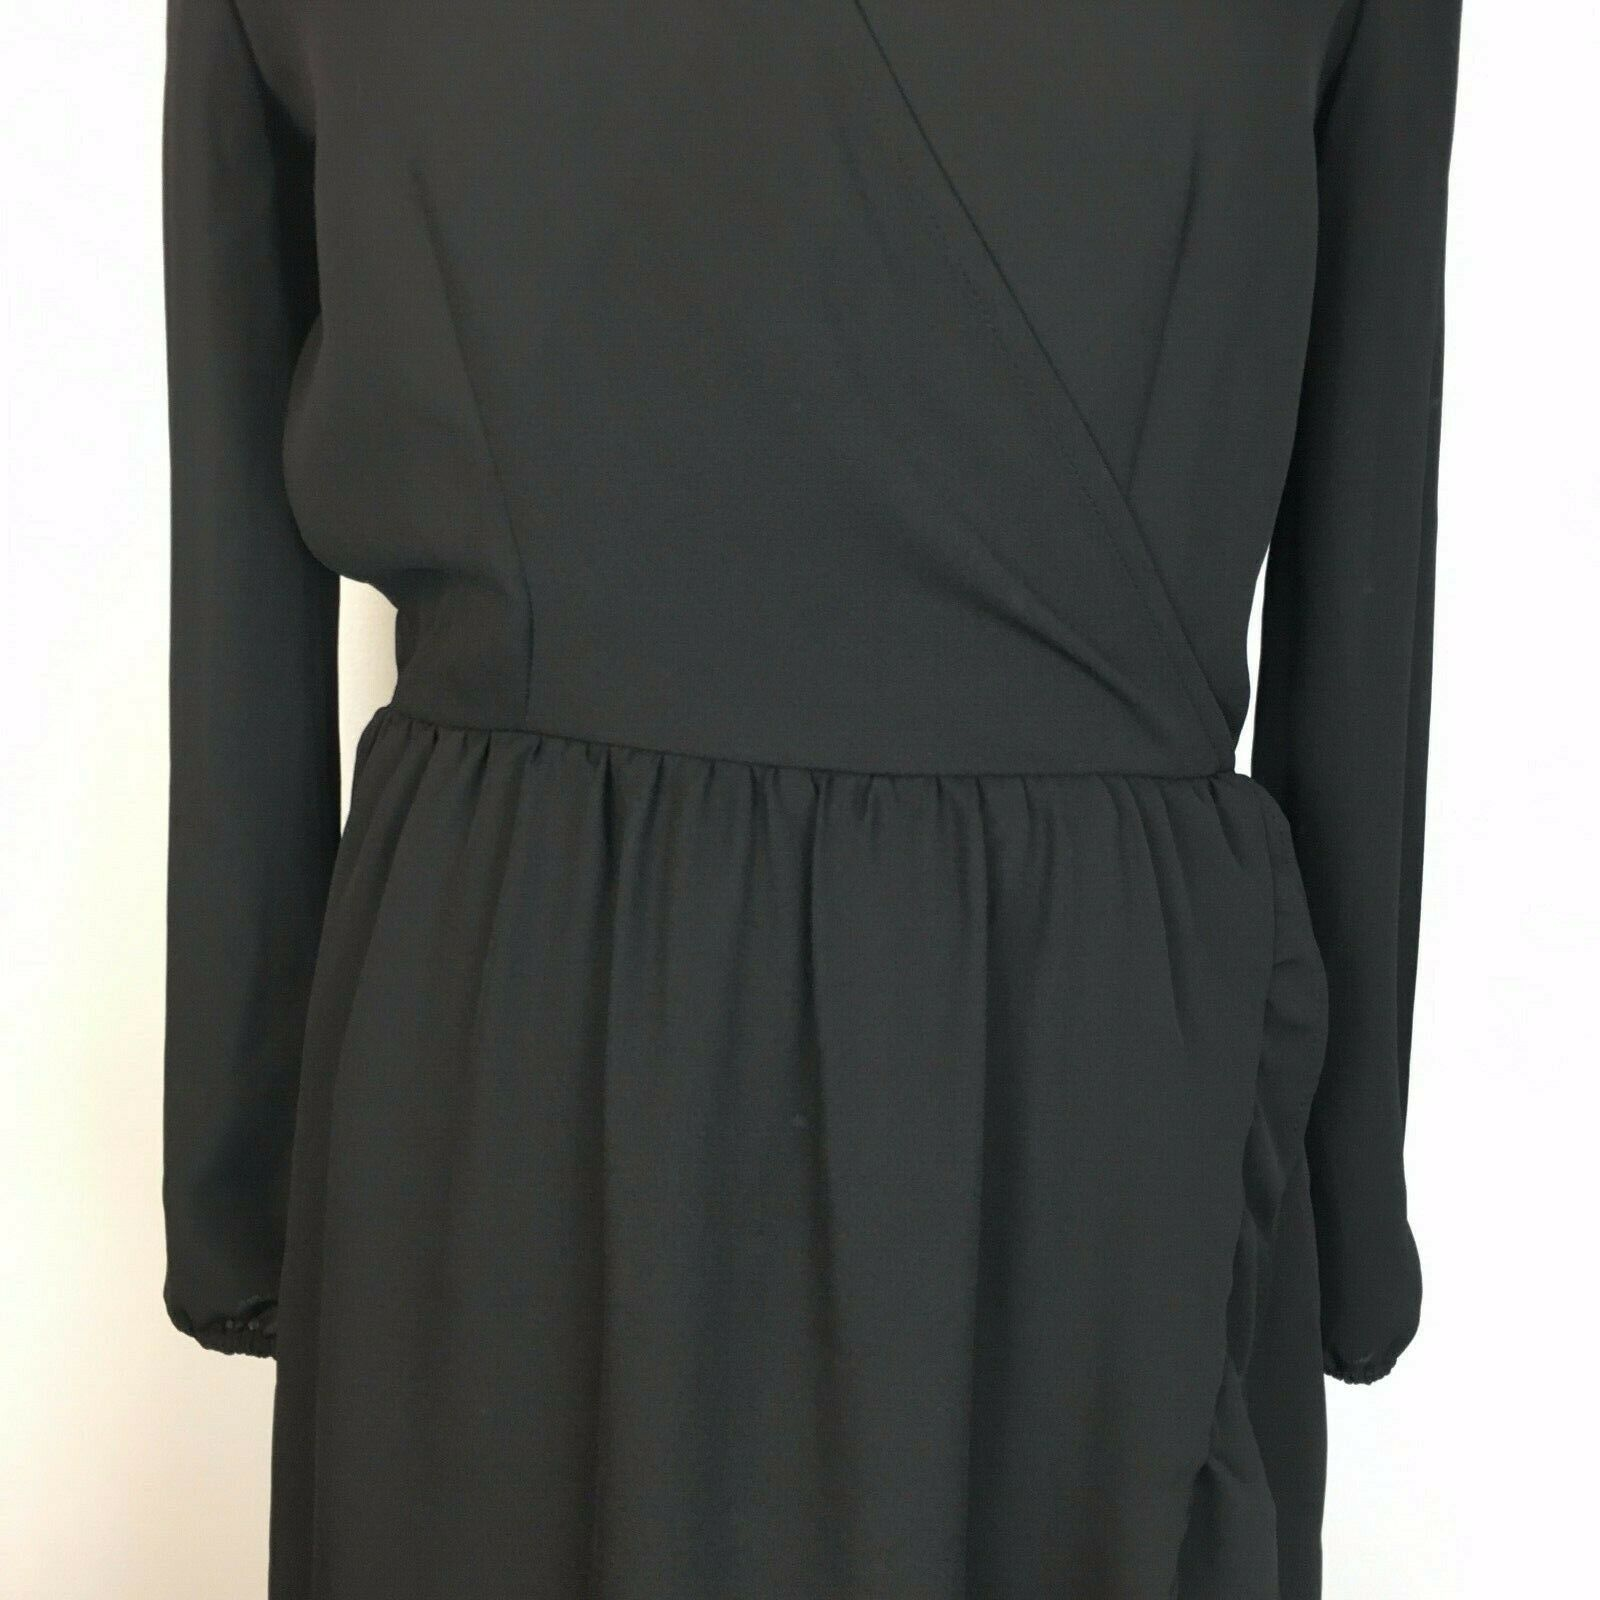 Old Navy Women's Classic Black Ruffled V-Neck Longsleeve Dress Size XS